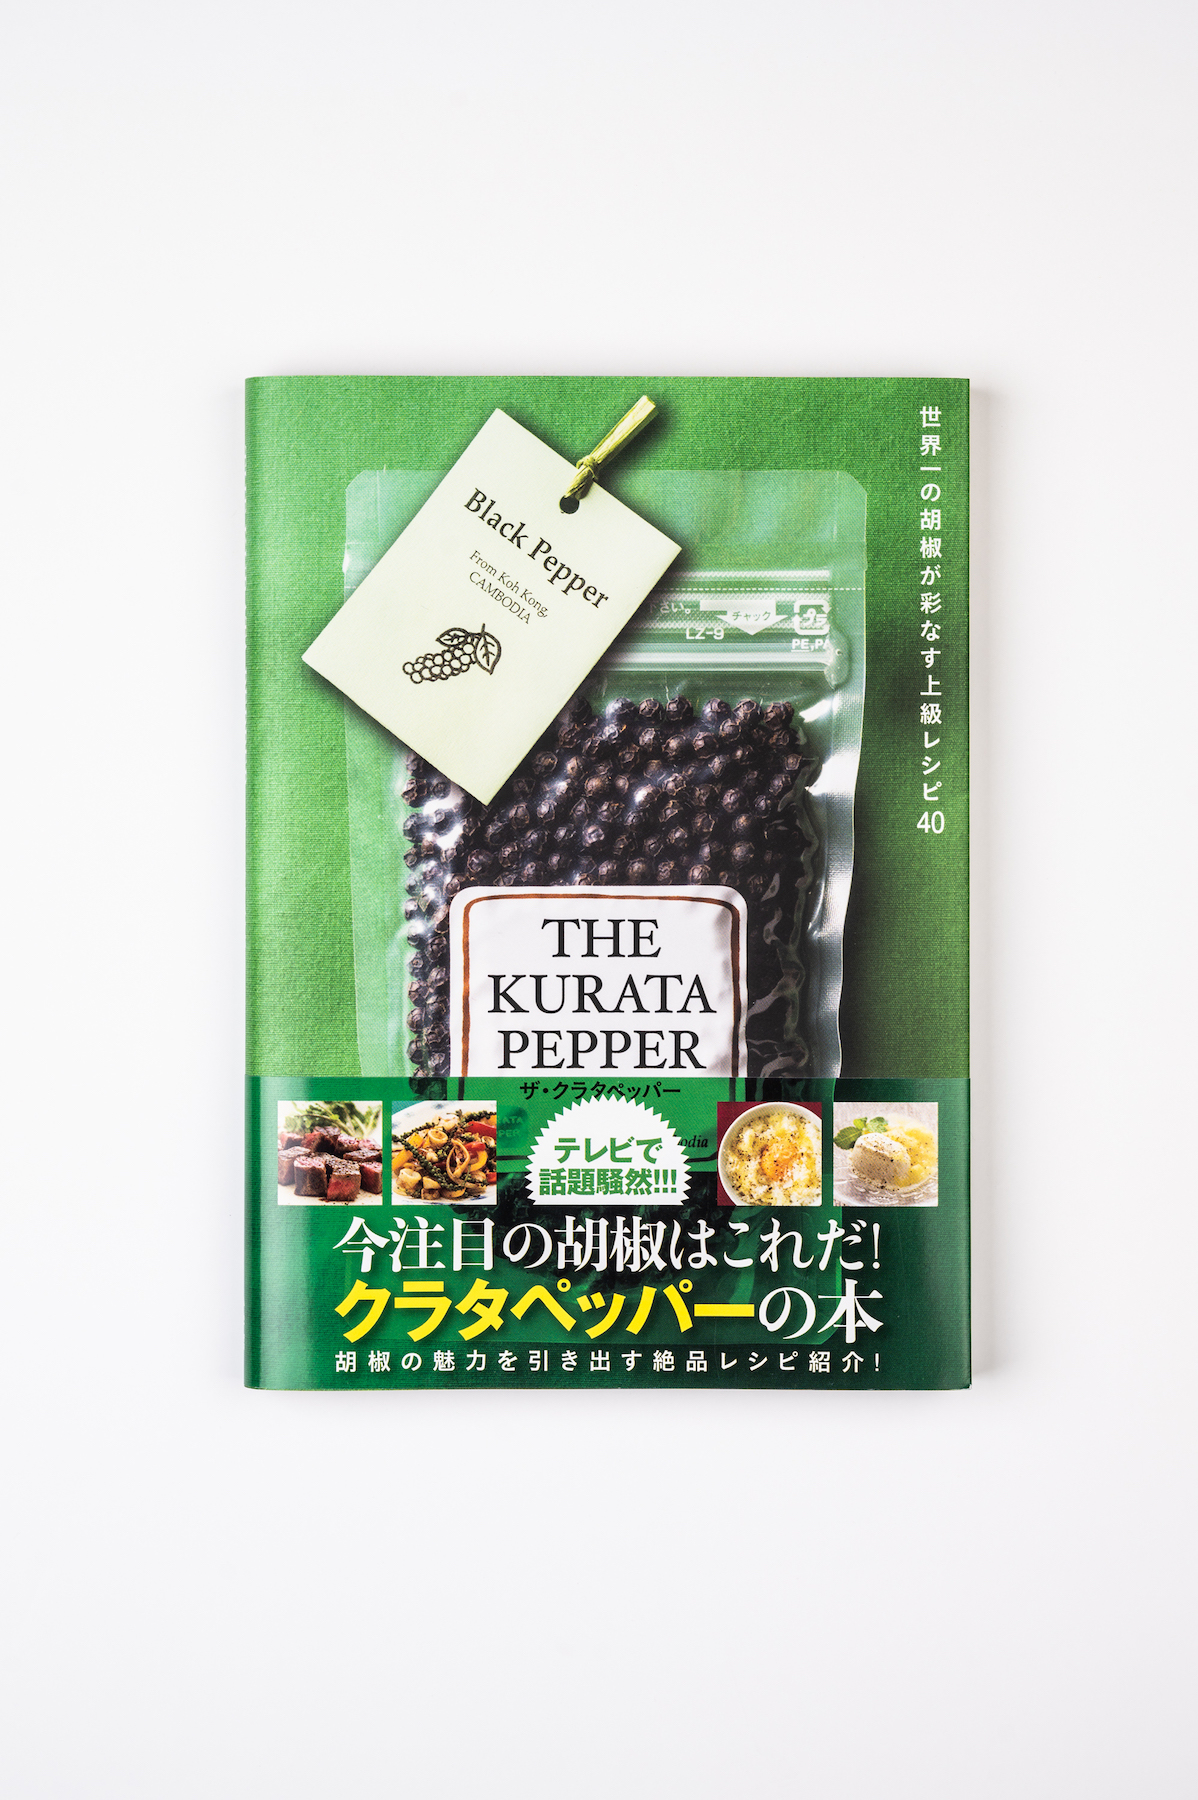 「The KURATA PEPPER」